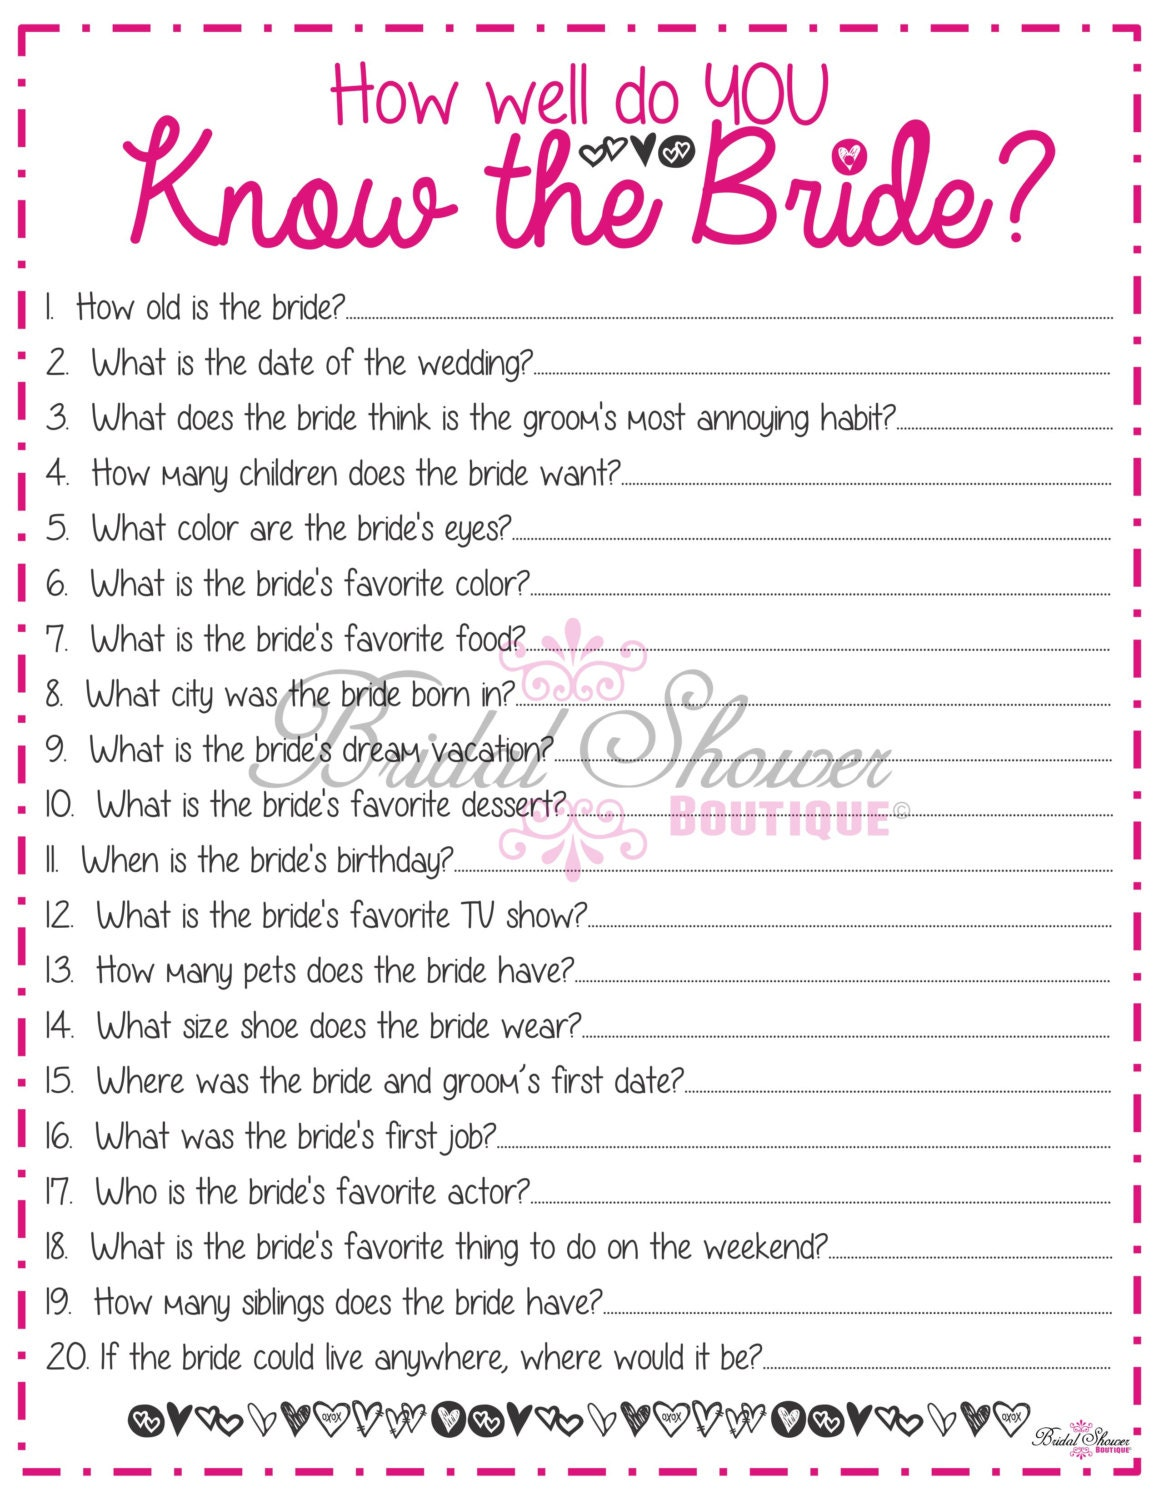 Lucrative image with regard to how well do you know the bride printable